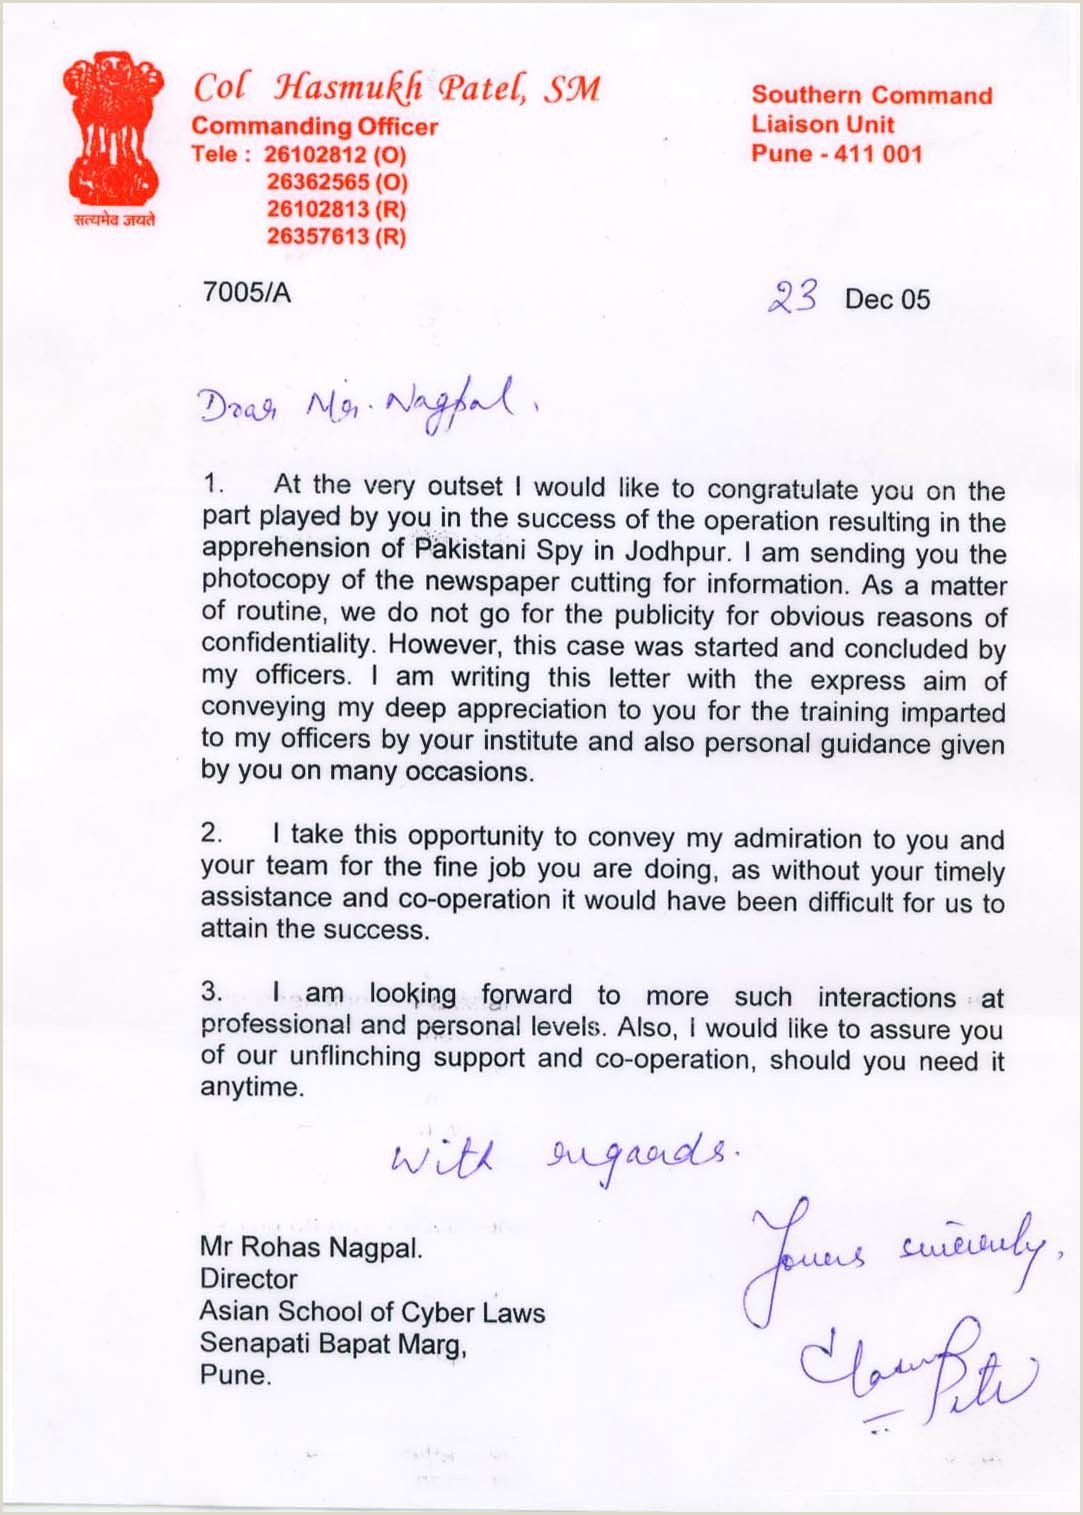 Letter of appreciation from the Indian Army for help with